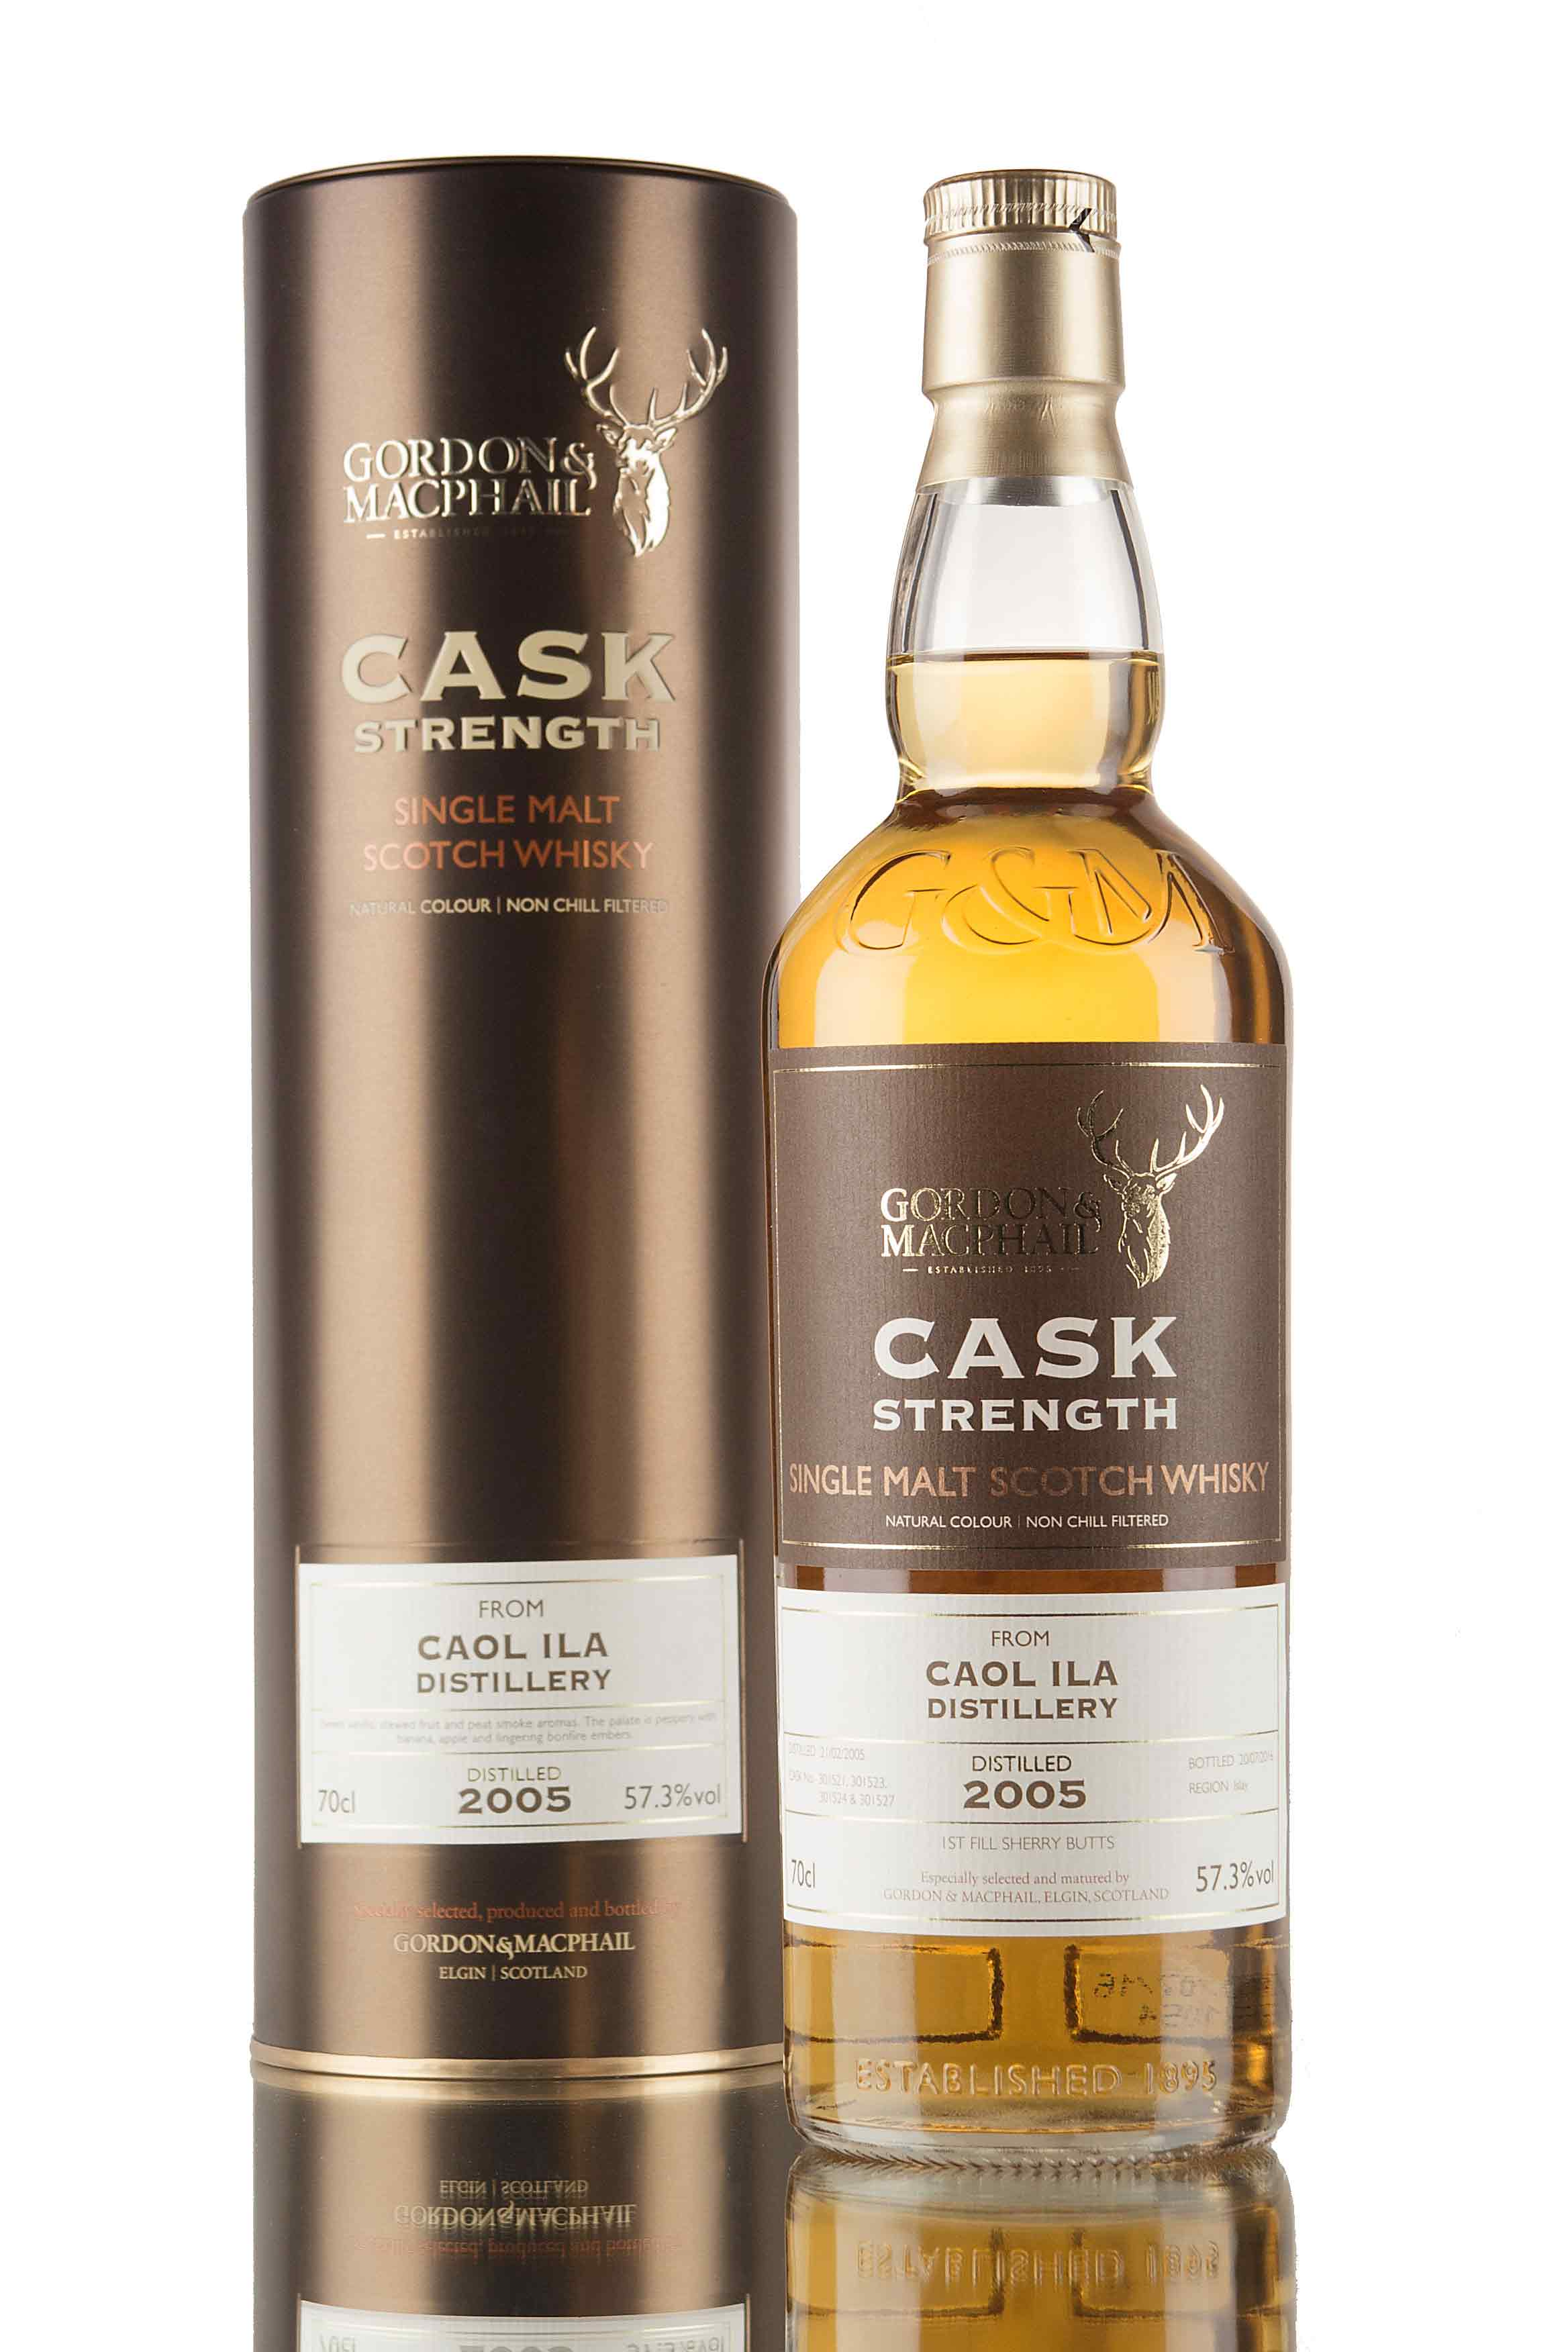 Caol Ila 11 Year Old - 2005 / Cask Strength (G&M)